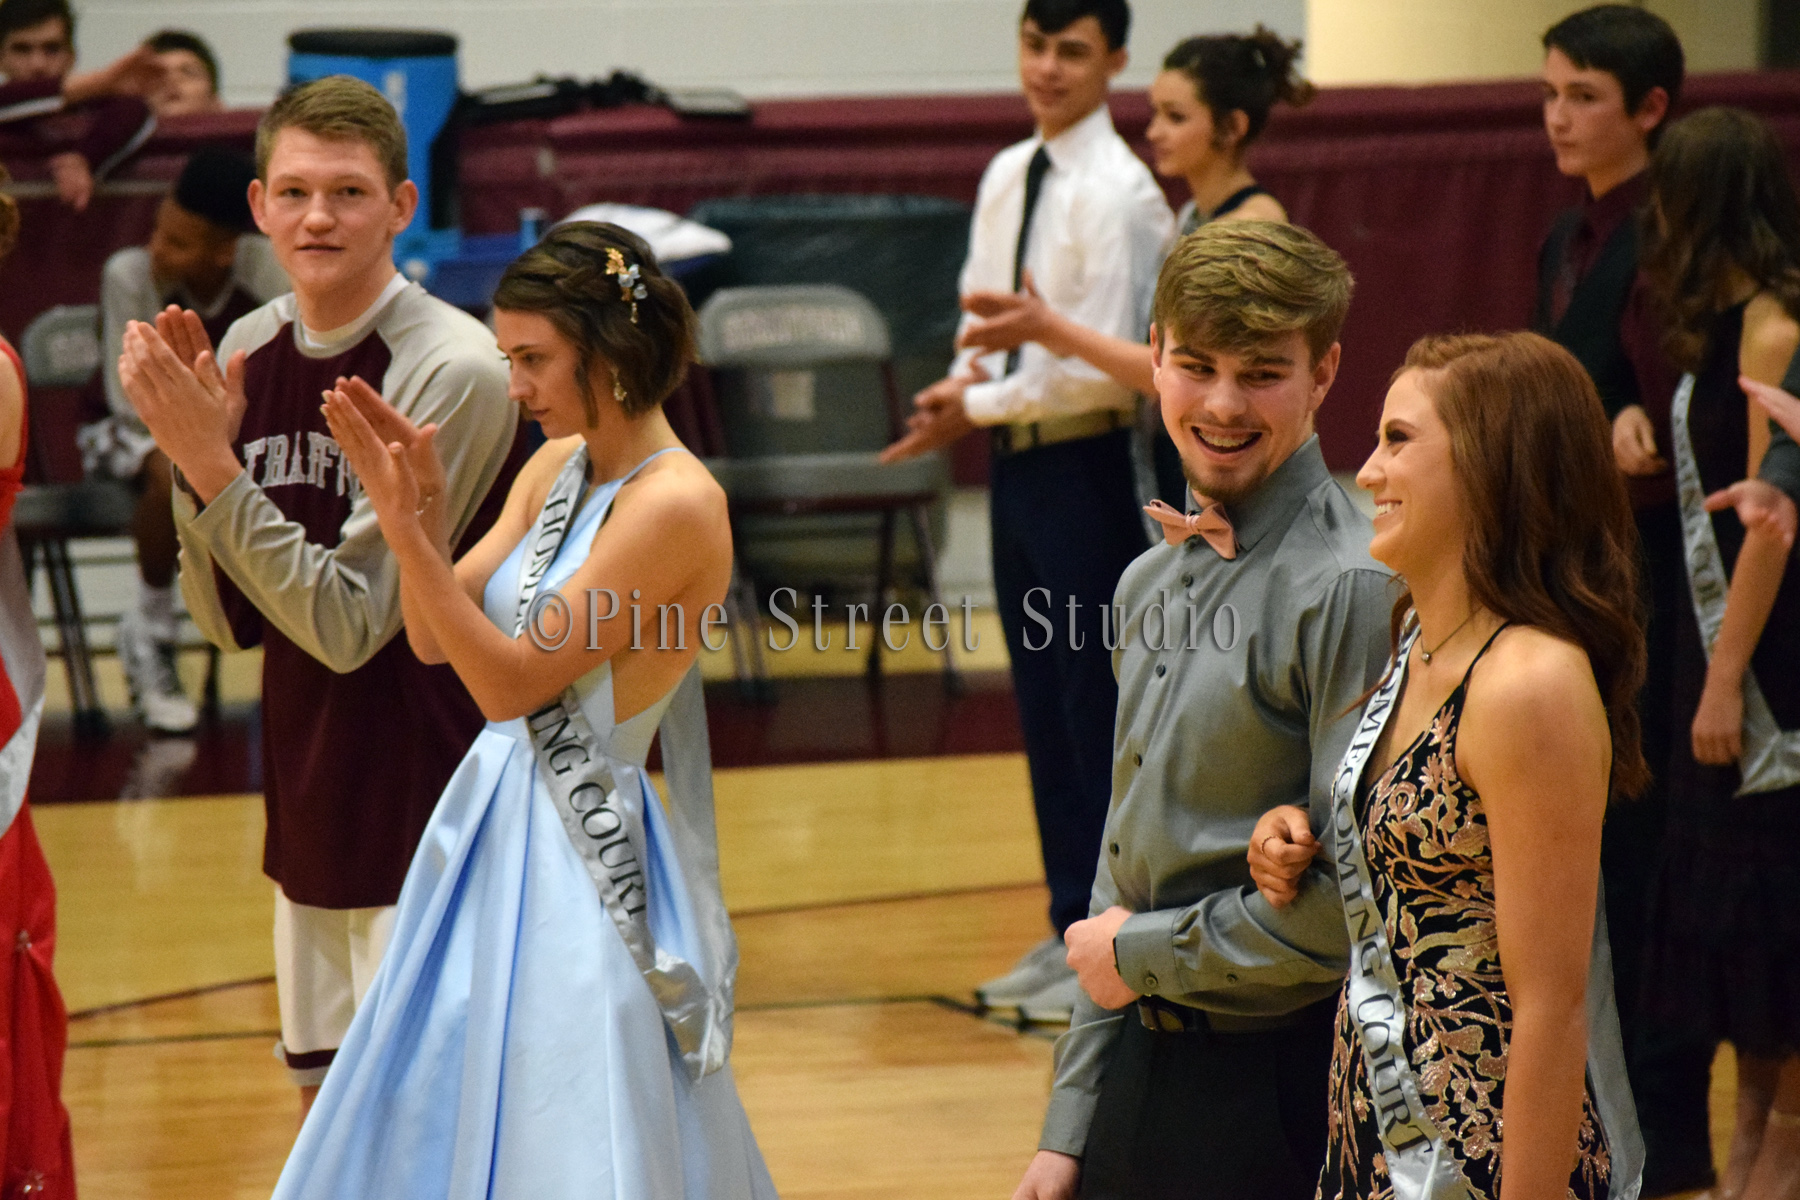 Strafford Boys Basketball Homecoming 2-8-2019